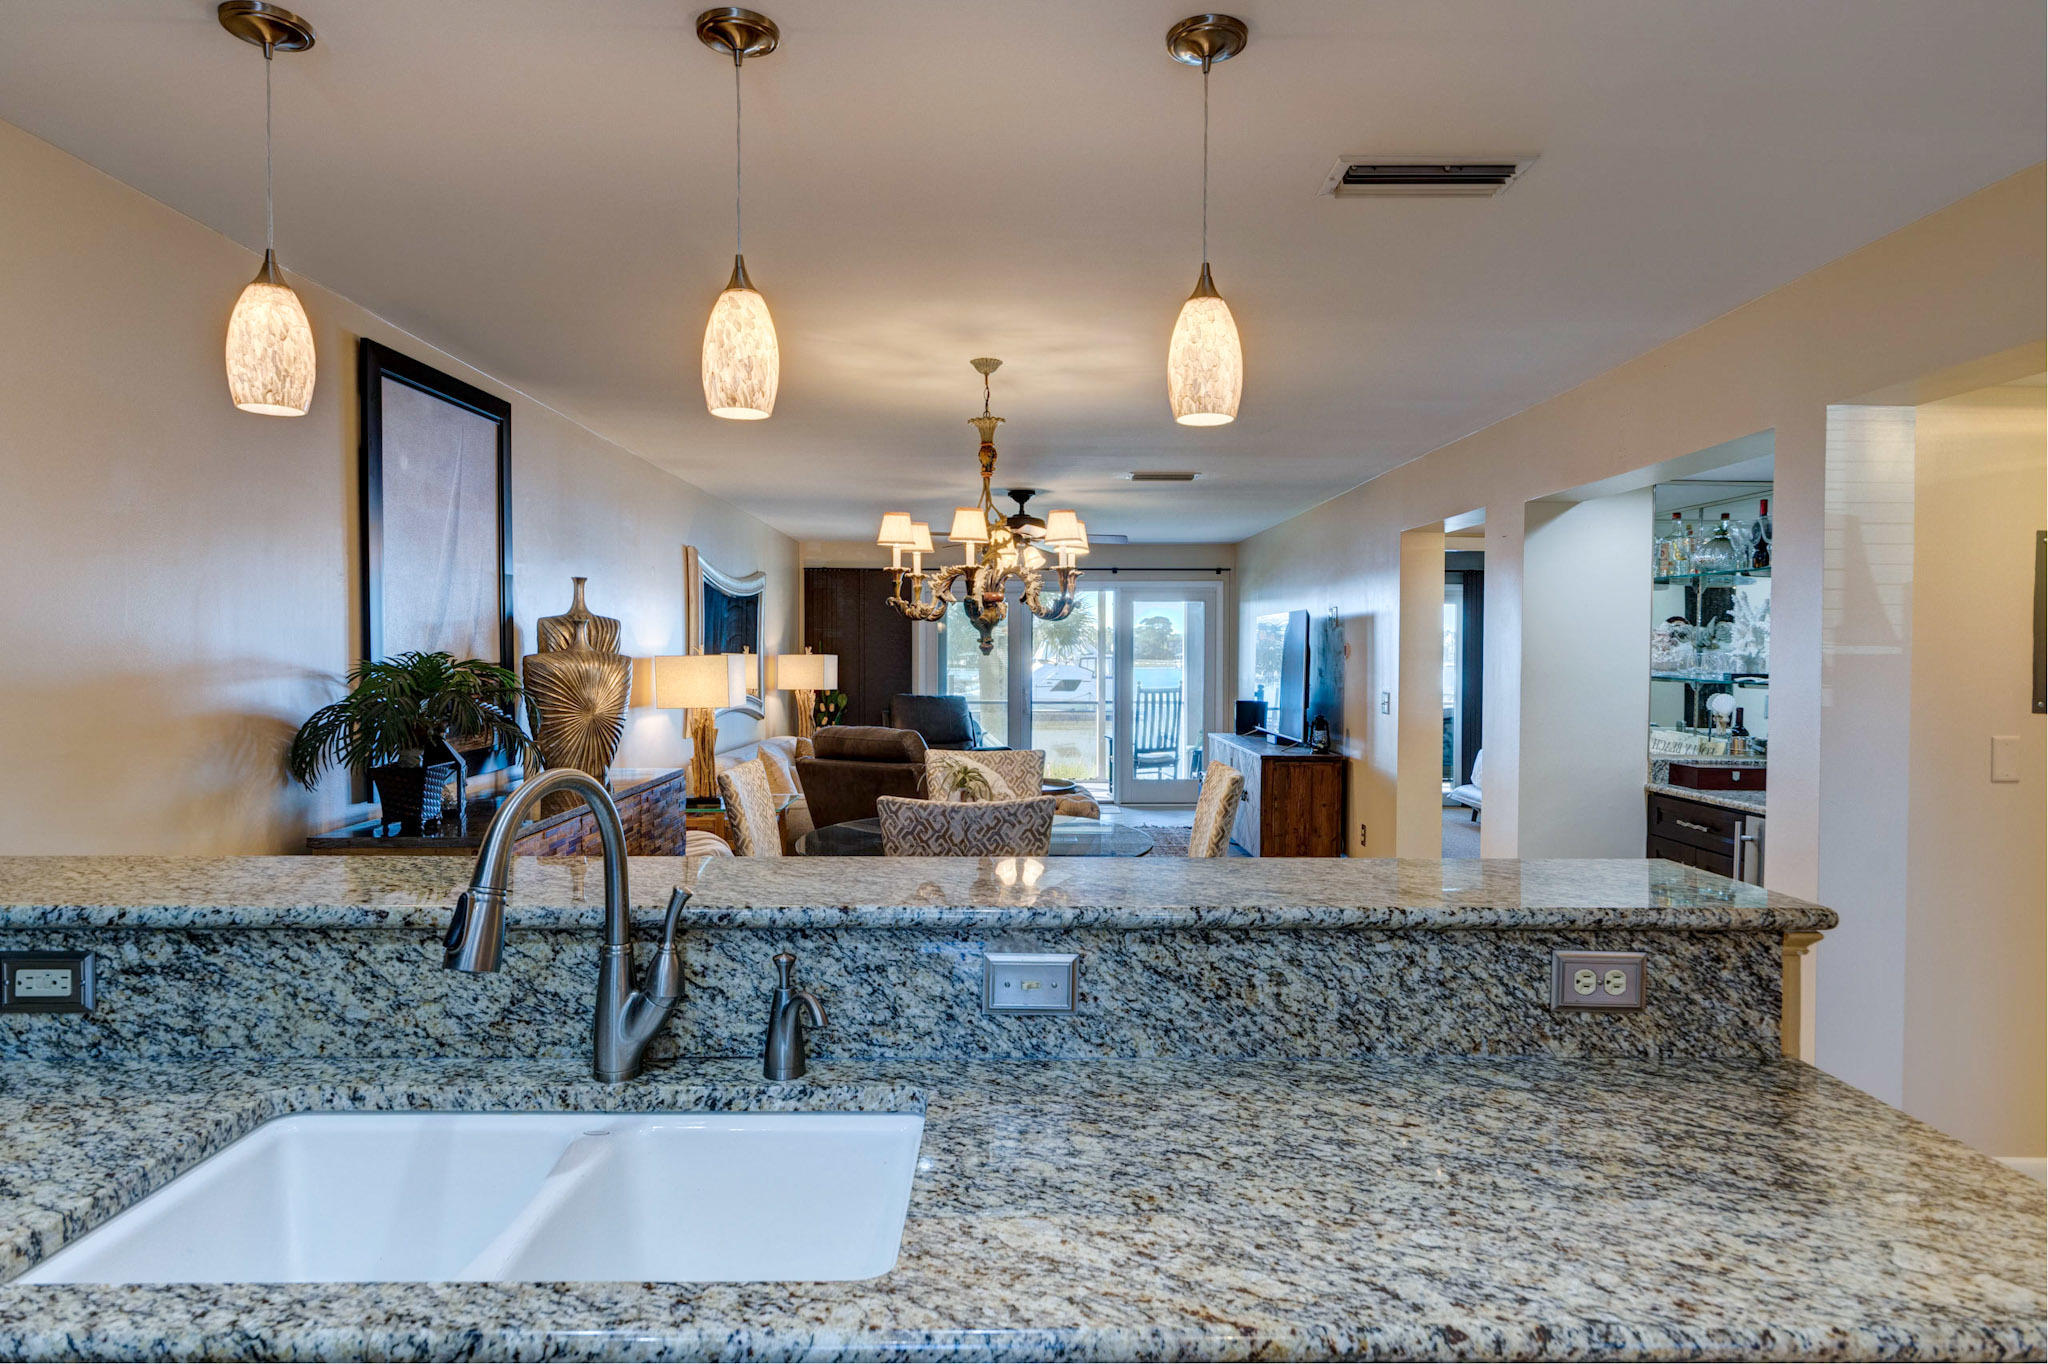 Mariners Cay Homes For Sale - 76 Mariners Cay, Folly Beach, SC - 23